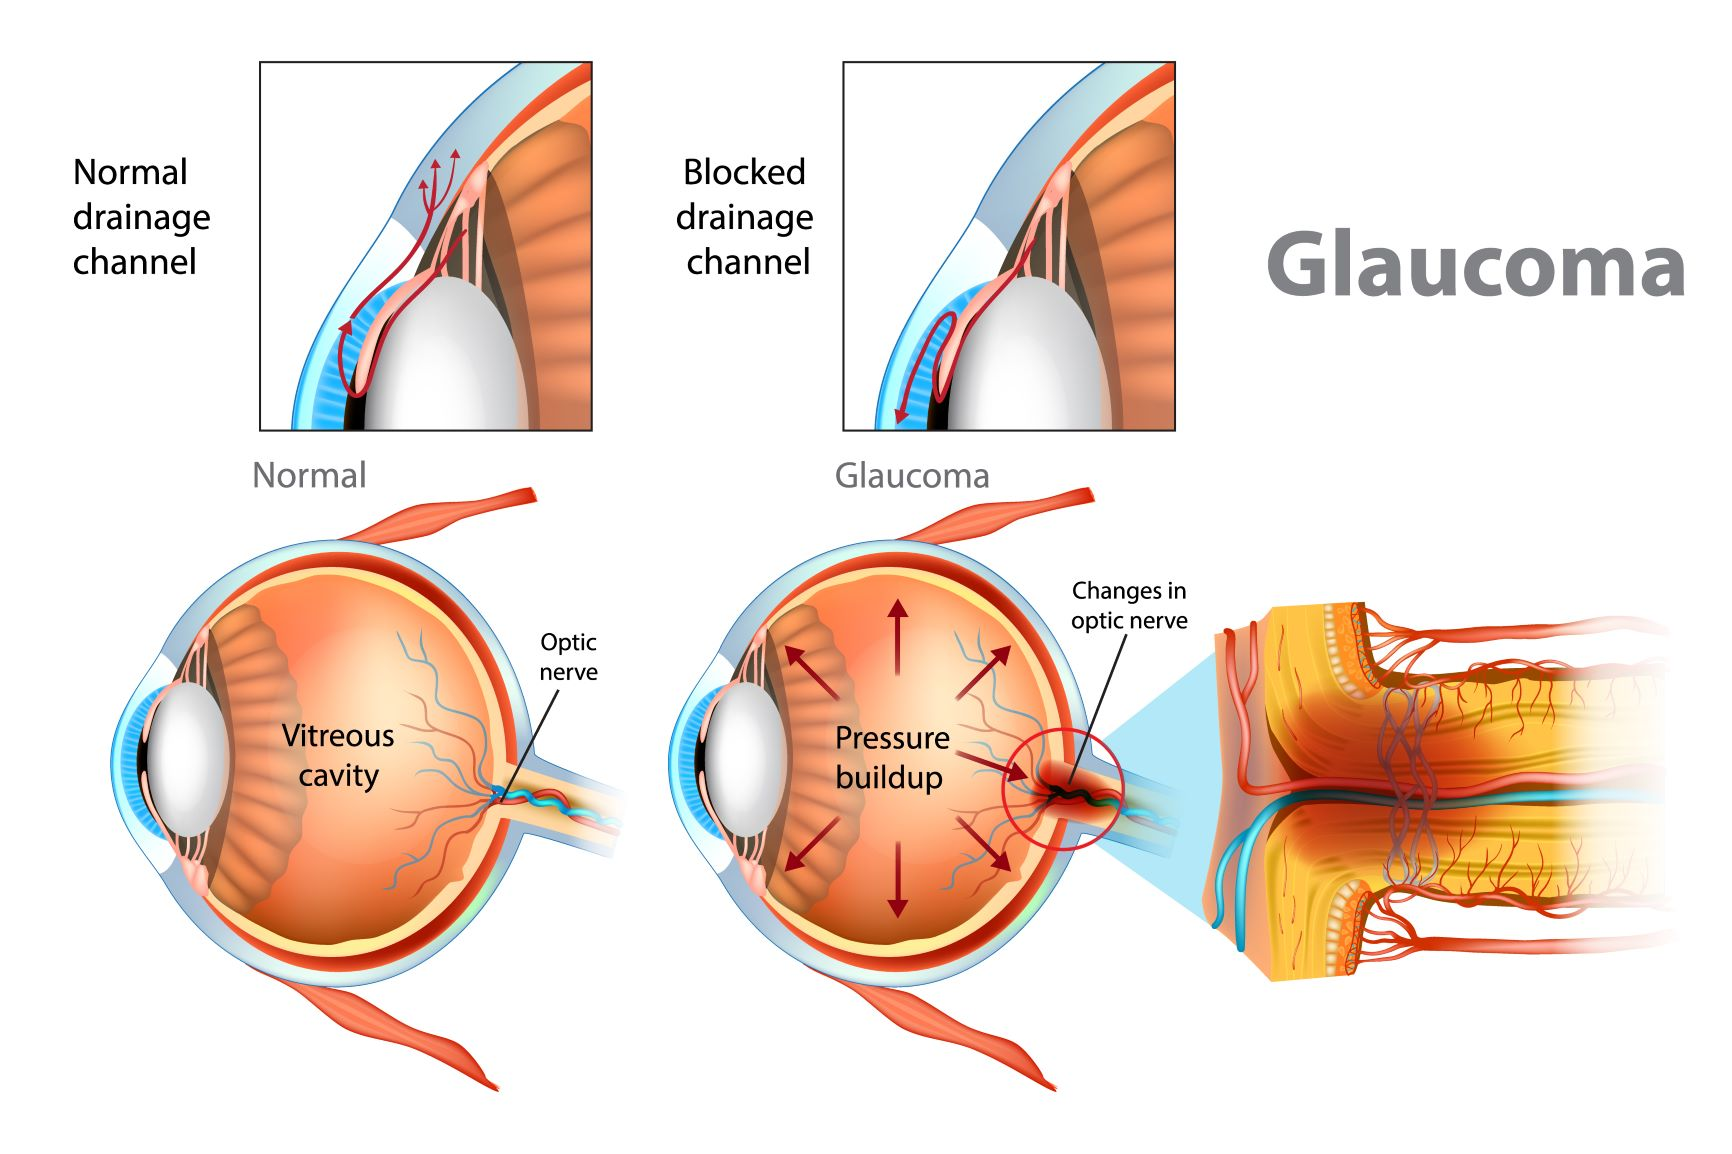 Information about Glaucoma